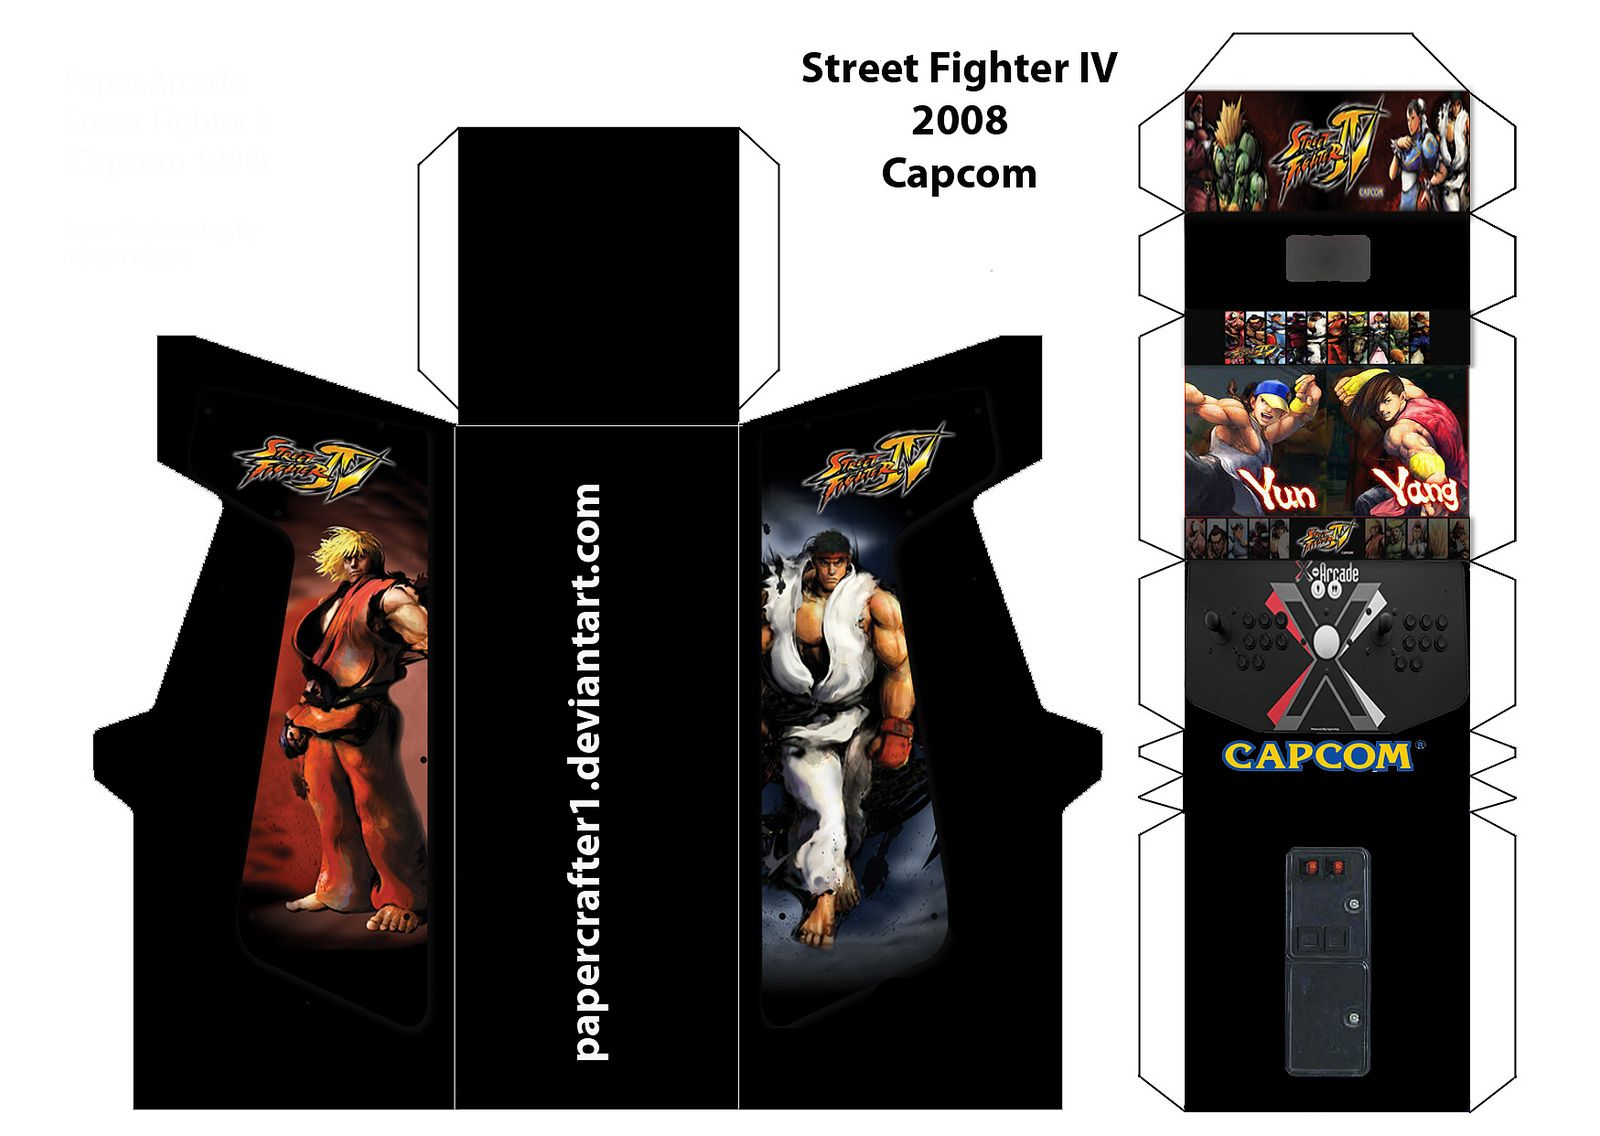 Here Is The Template For Street Fighter IV Paper Arcade Cabinet I Made From SF2